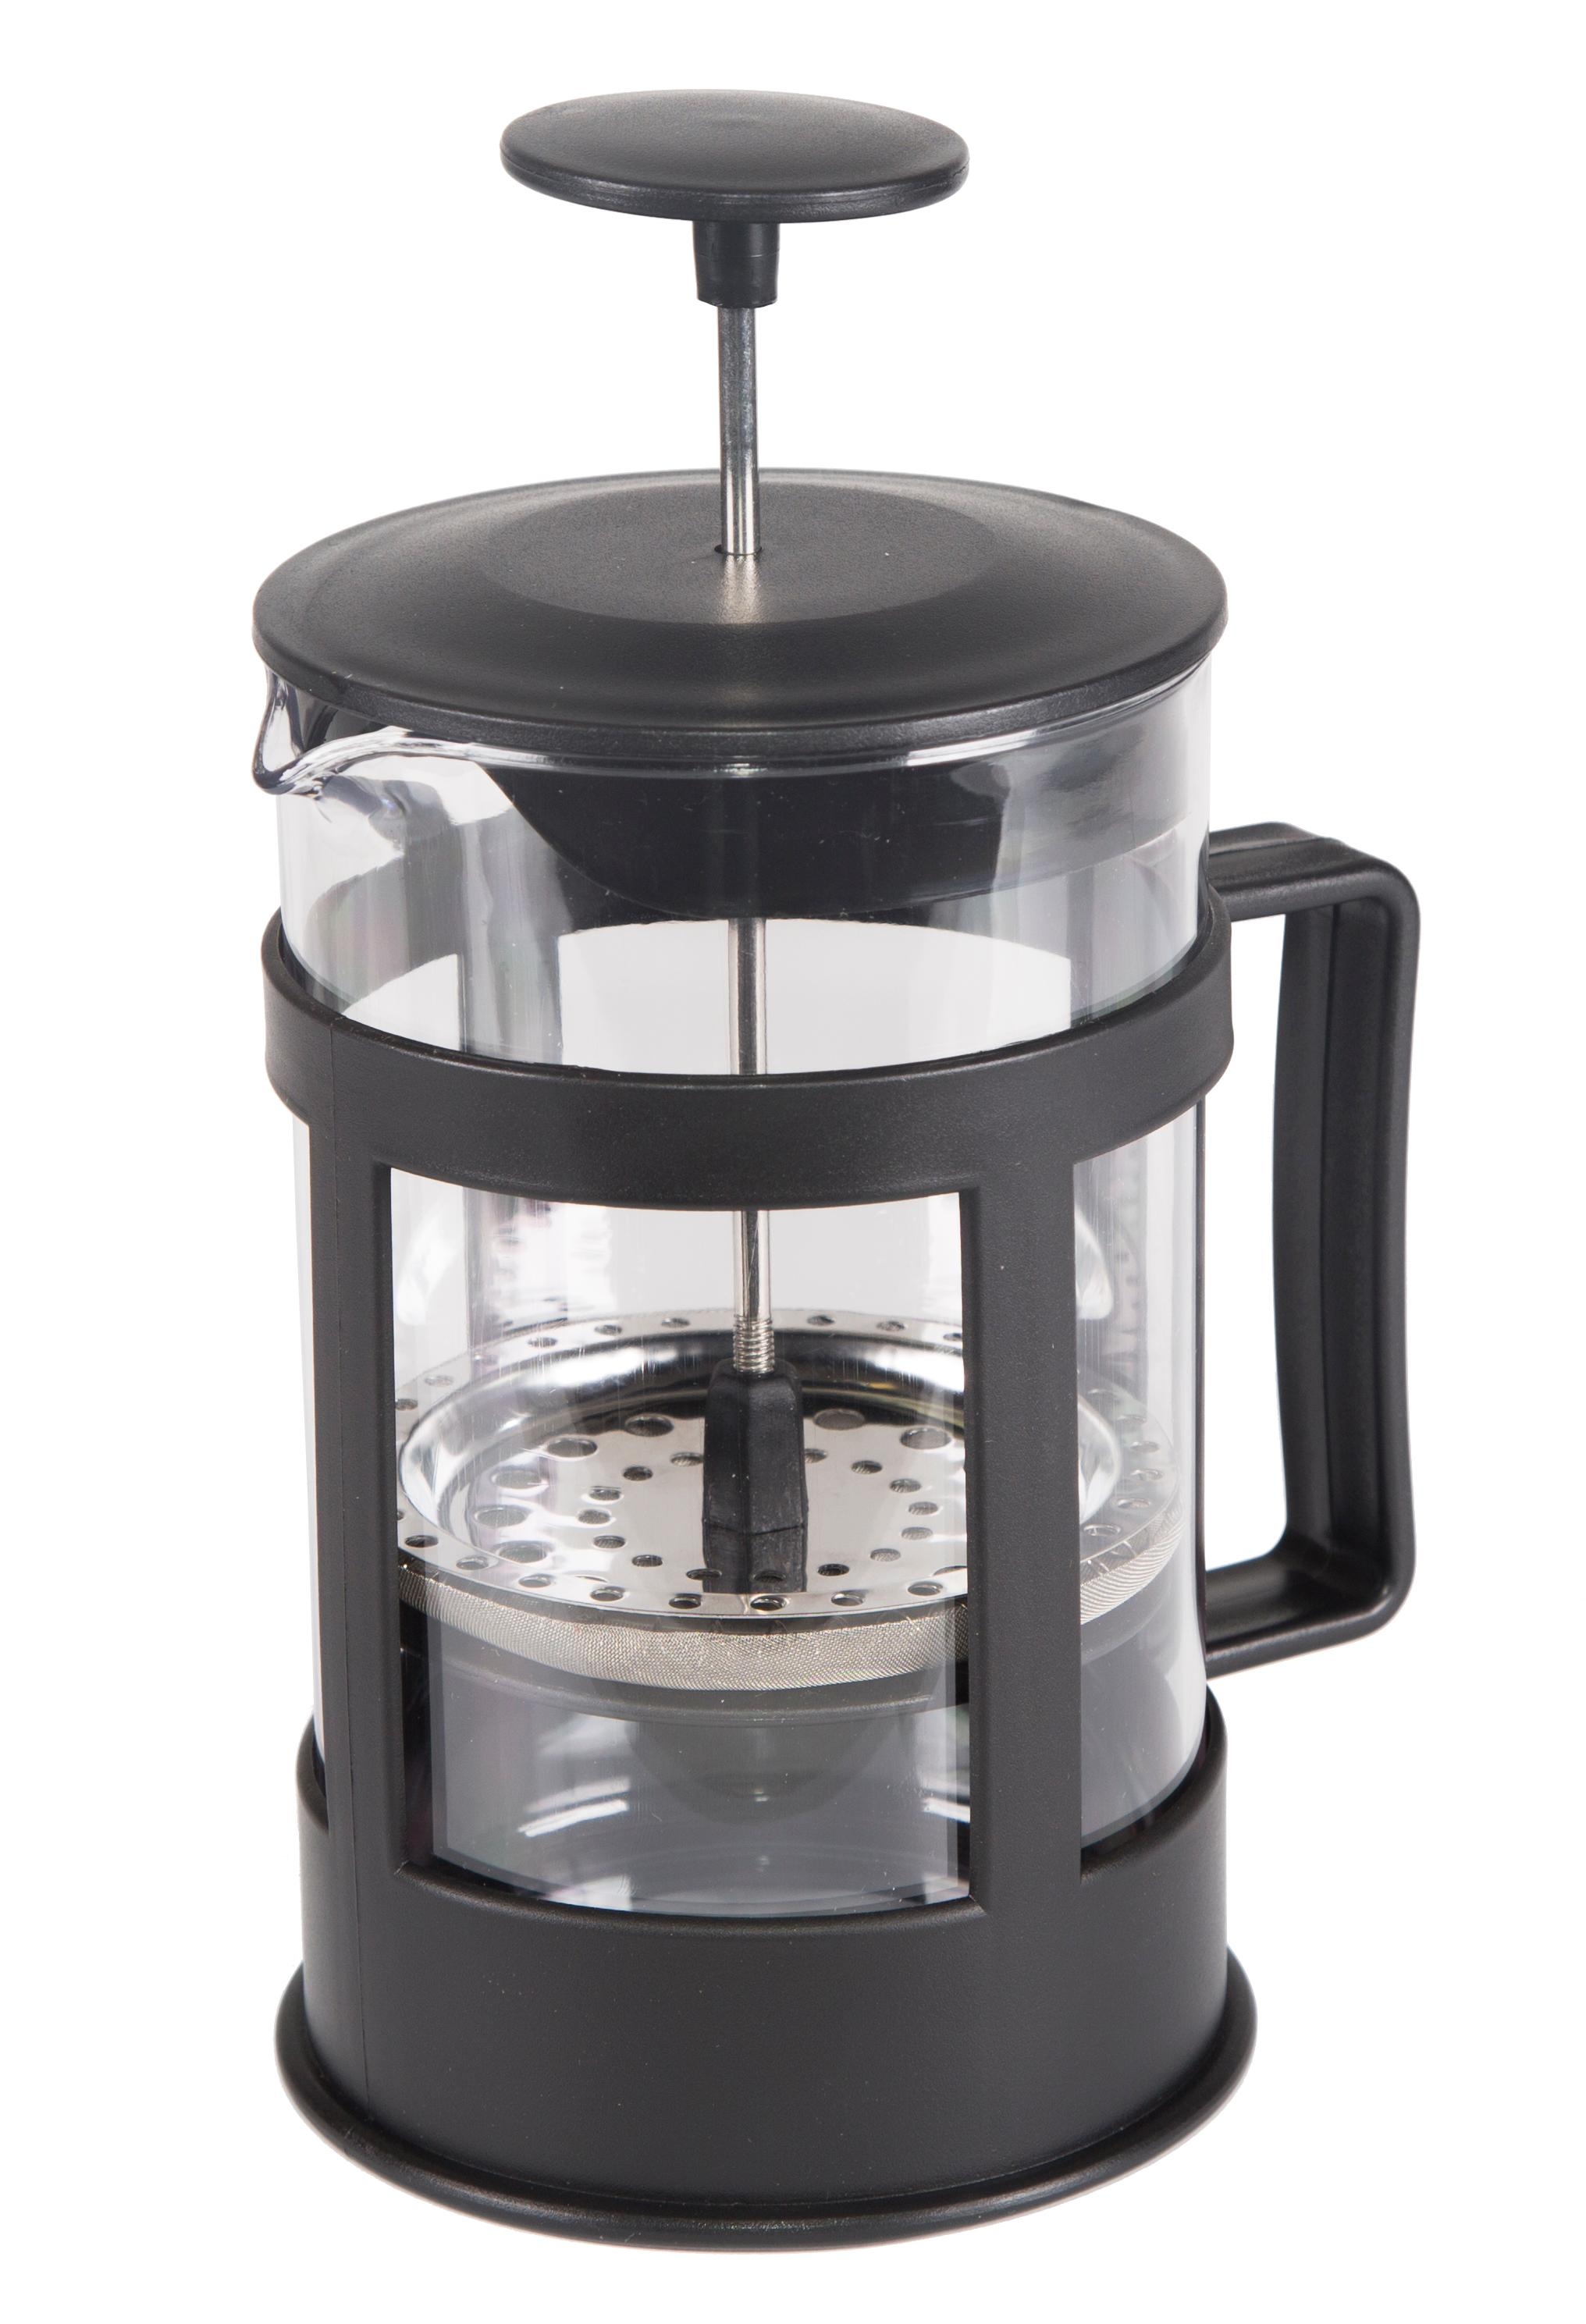 French Press Coffee Maker Cholesterol : Amazon.com : Stansport French Coffee Press : Camping Coffee And Tea Pots : Sports & Outdoors